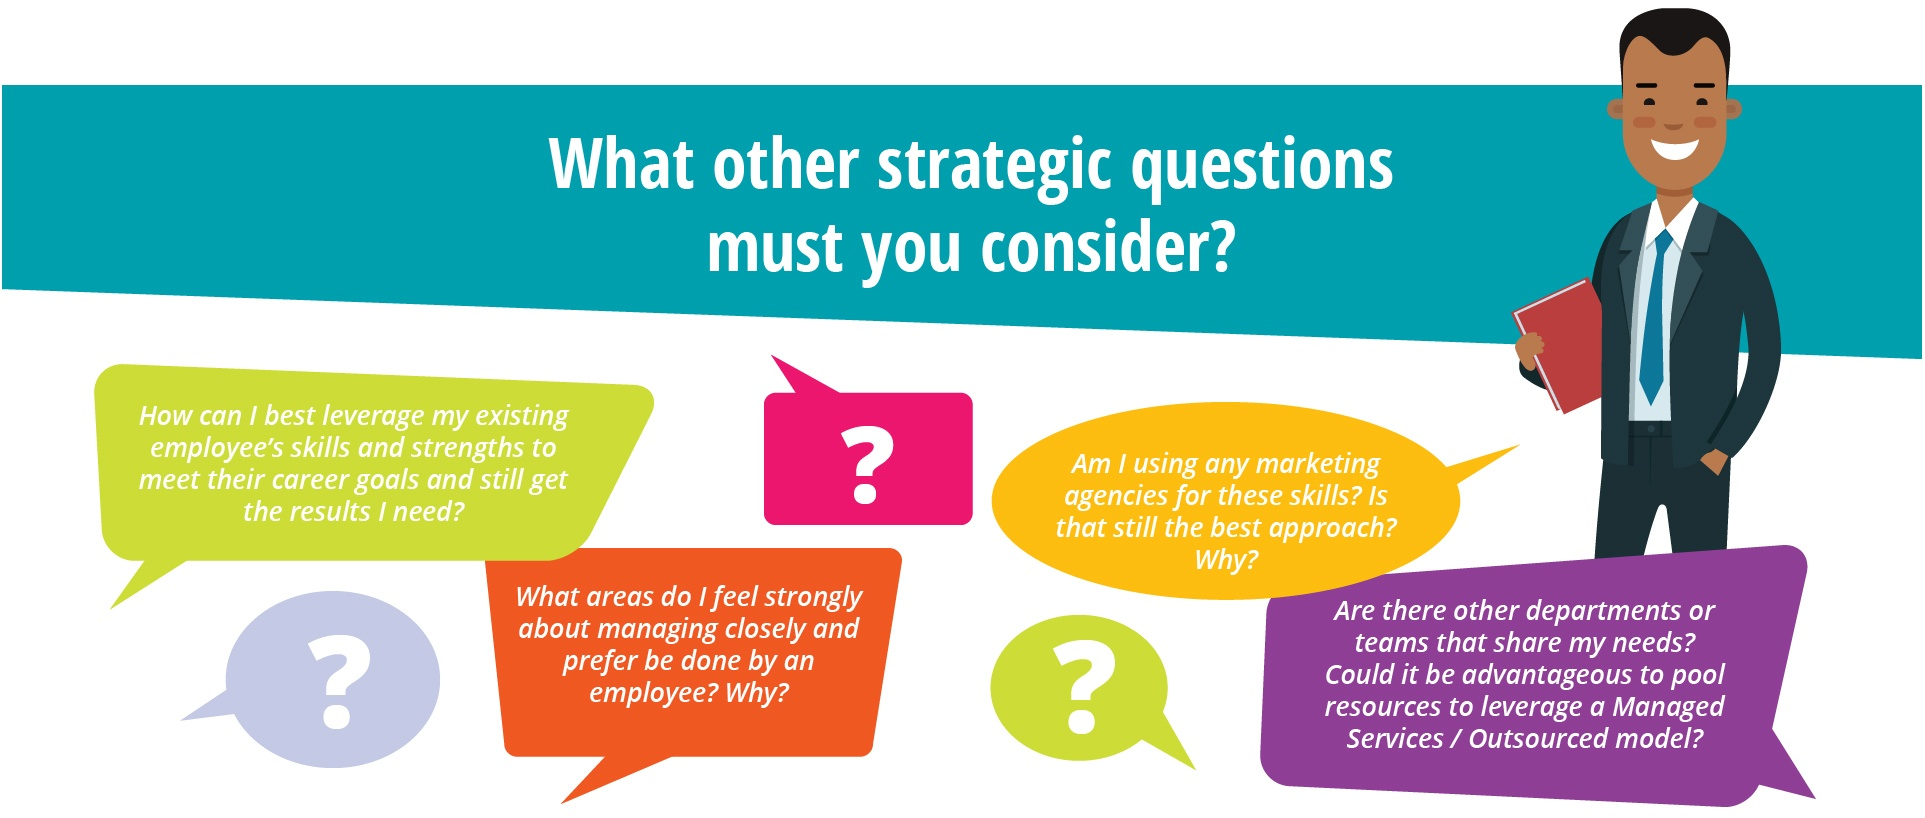 Strategic questions to ask regarding contingent workforce planning.